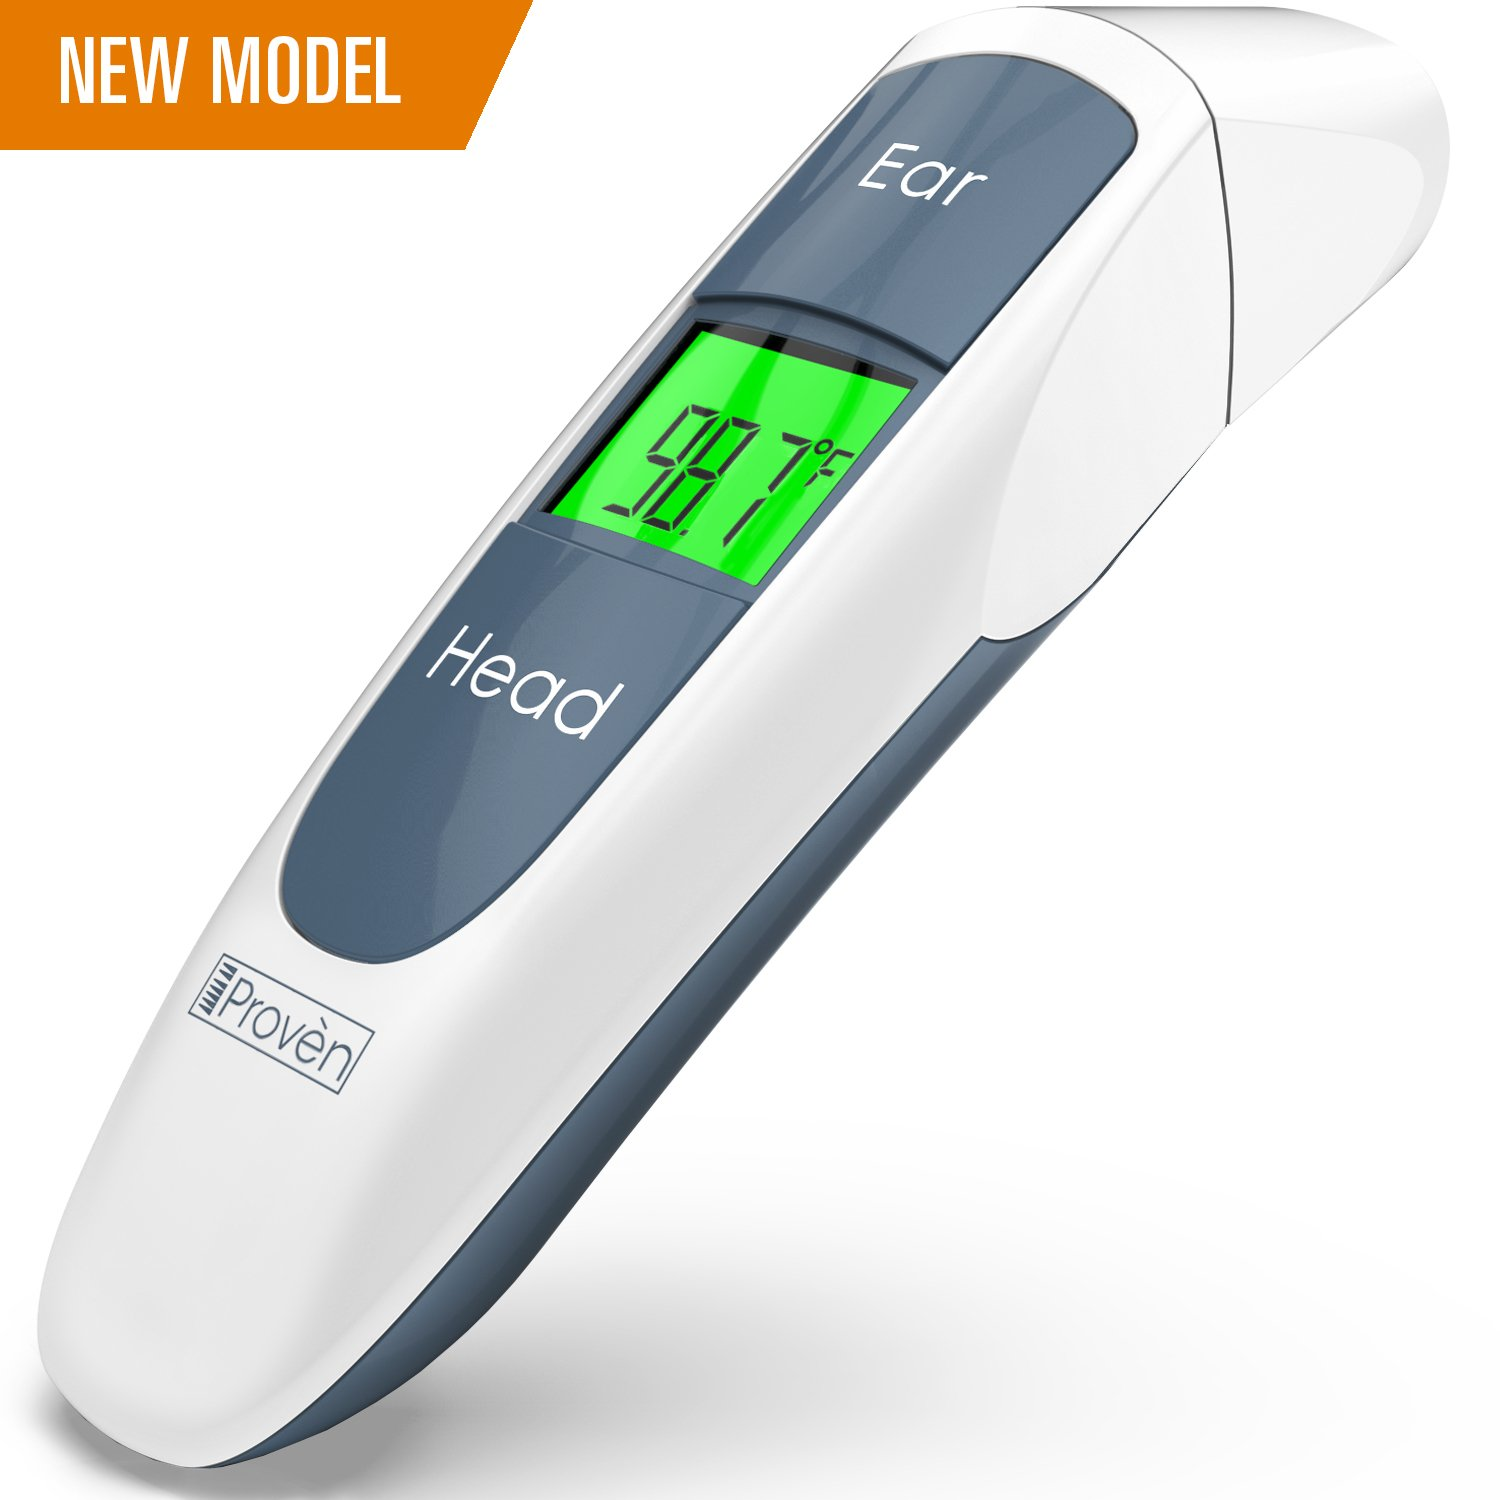 Best Medical Digital Ear Thermometer (Termometro) with Temporal Forehead Function - for Baby, Infant and Kids - Upgraded Tympanic Fever Scan Lens Technology for Unmatched Accuracy - New 2018 DMT-316b